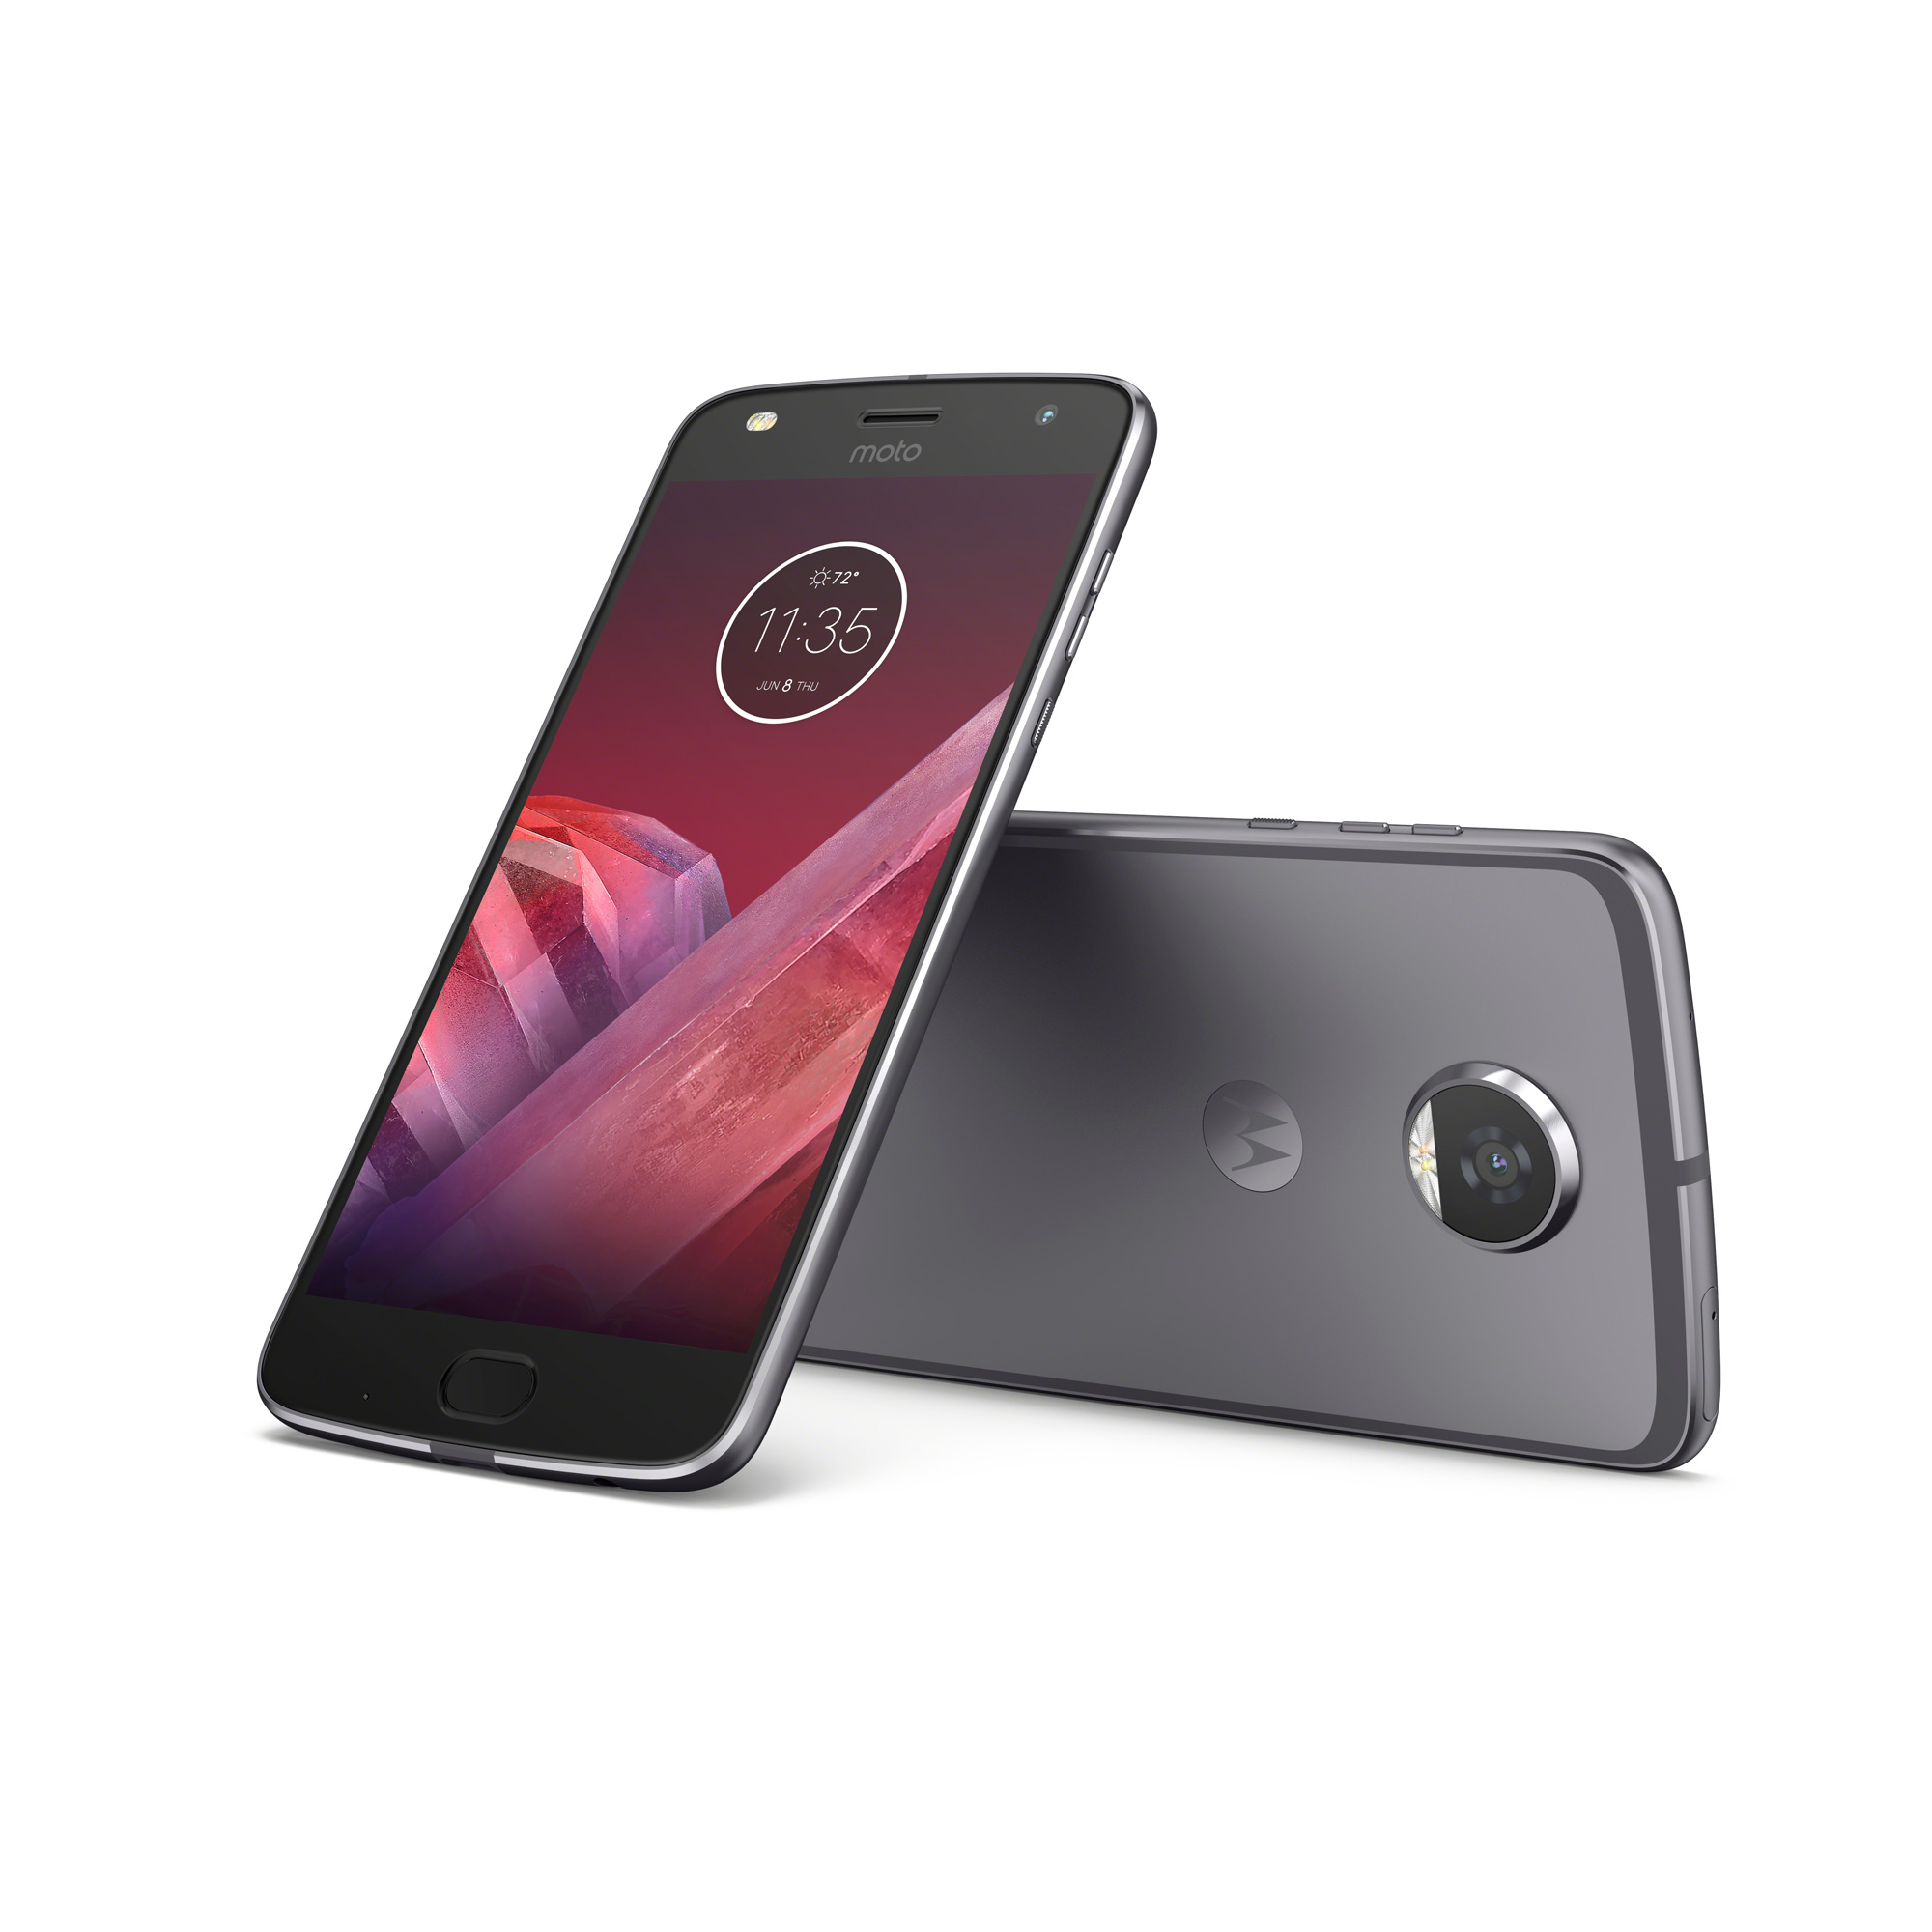 Moto Z3 images leak ahead of launch